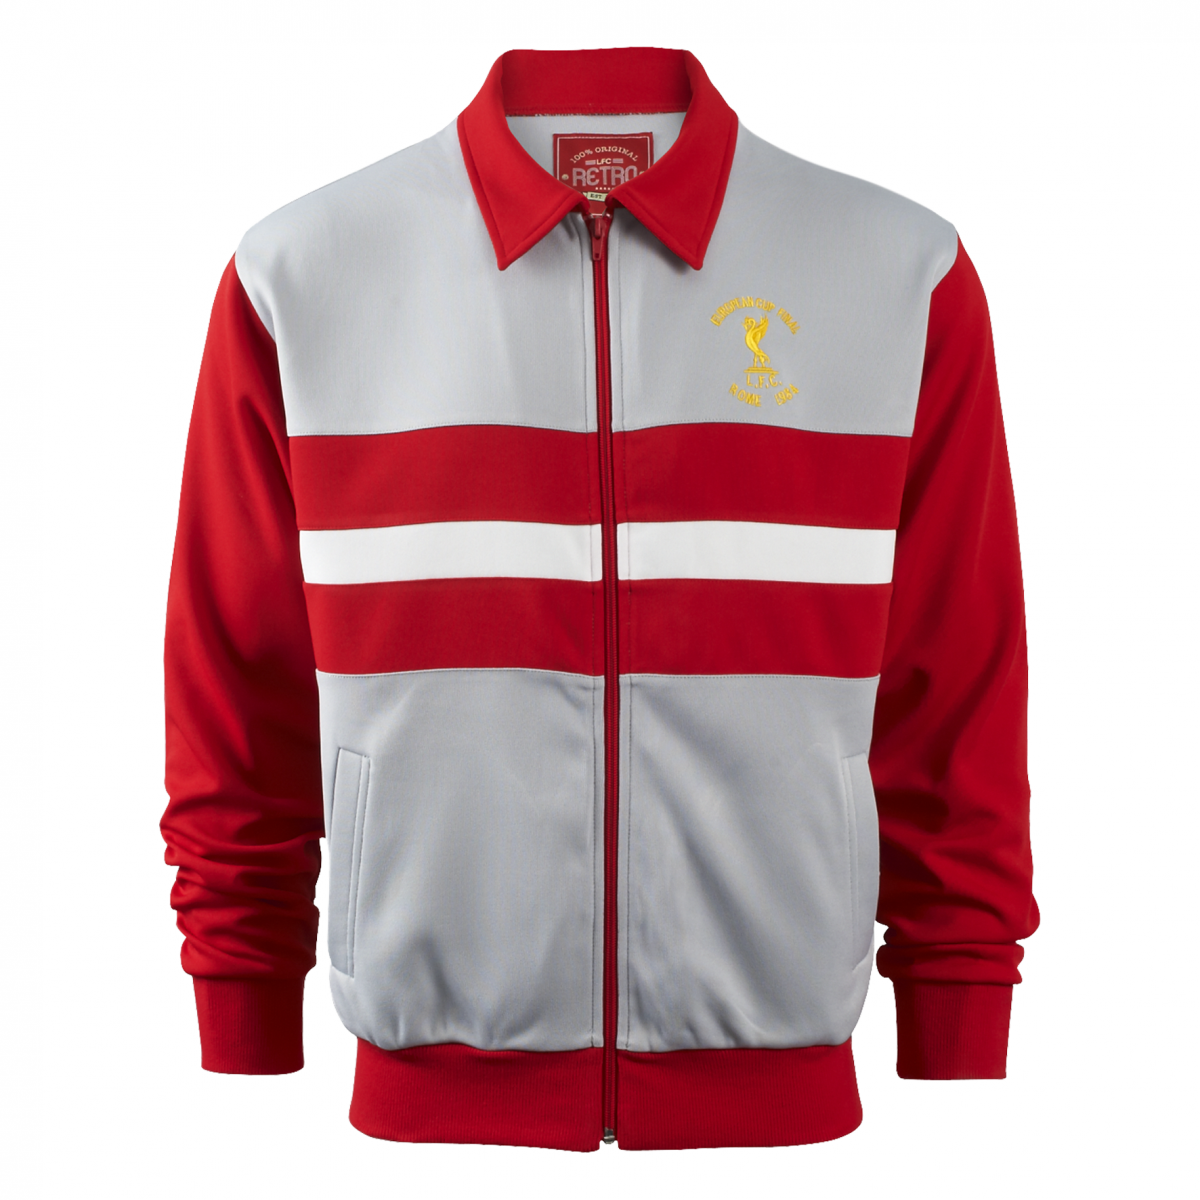 049e48320c1 Liverpool FC Rome 84 Retro Jacket